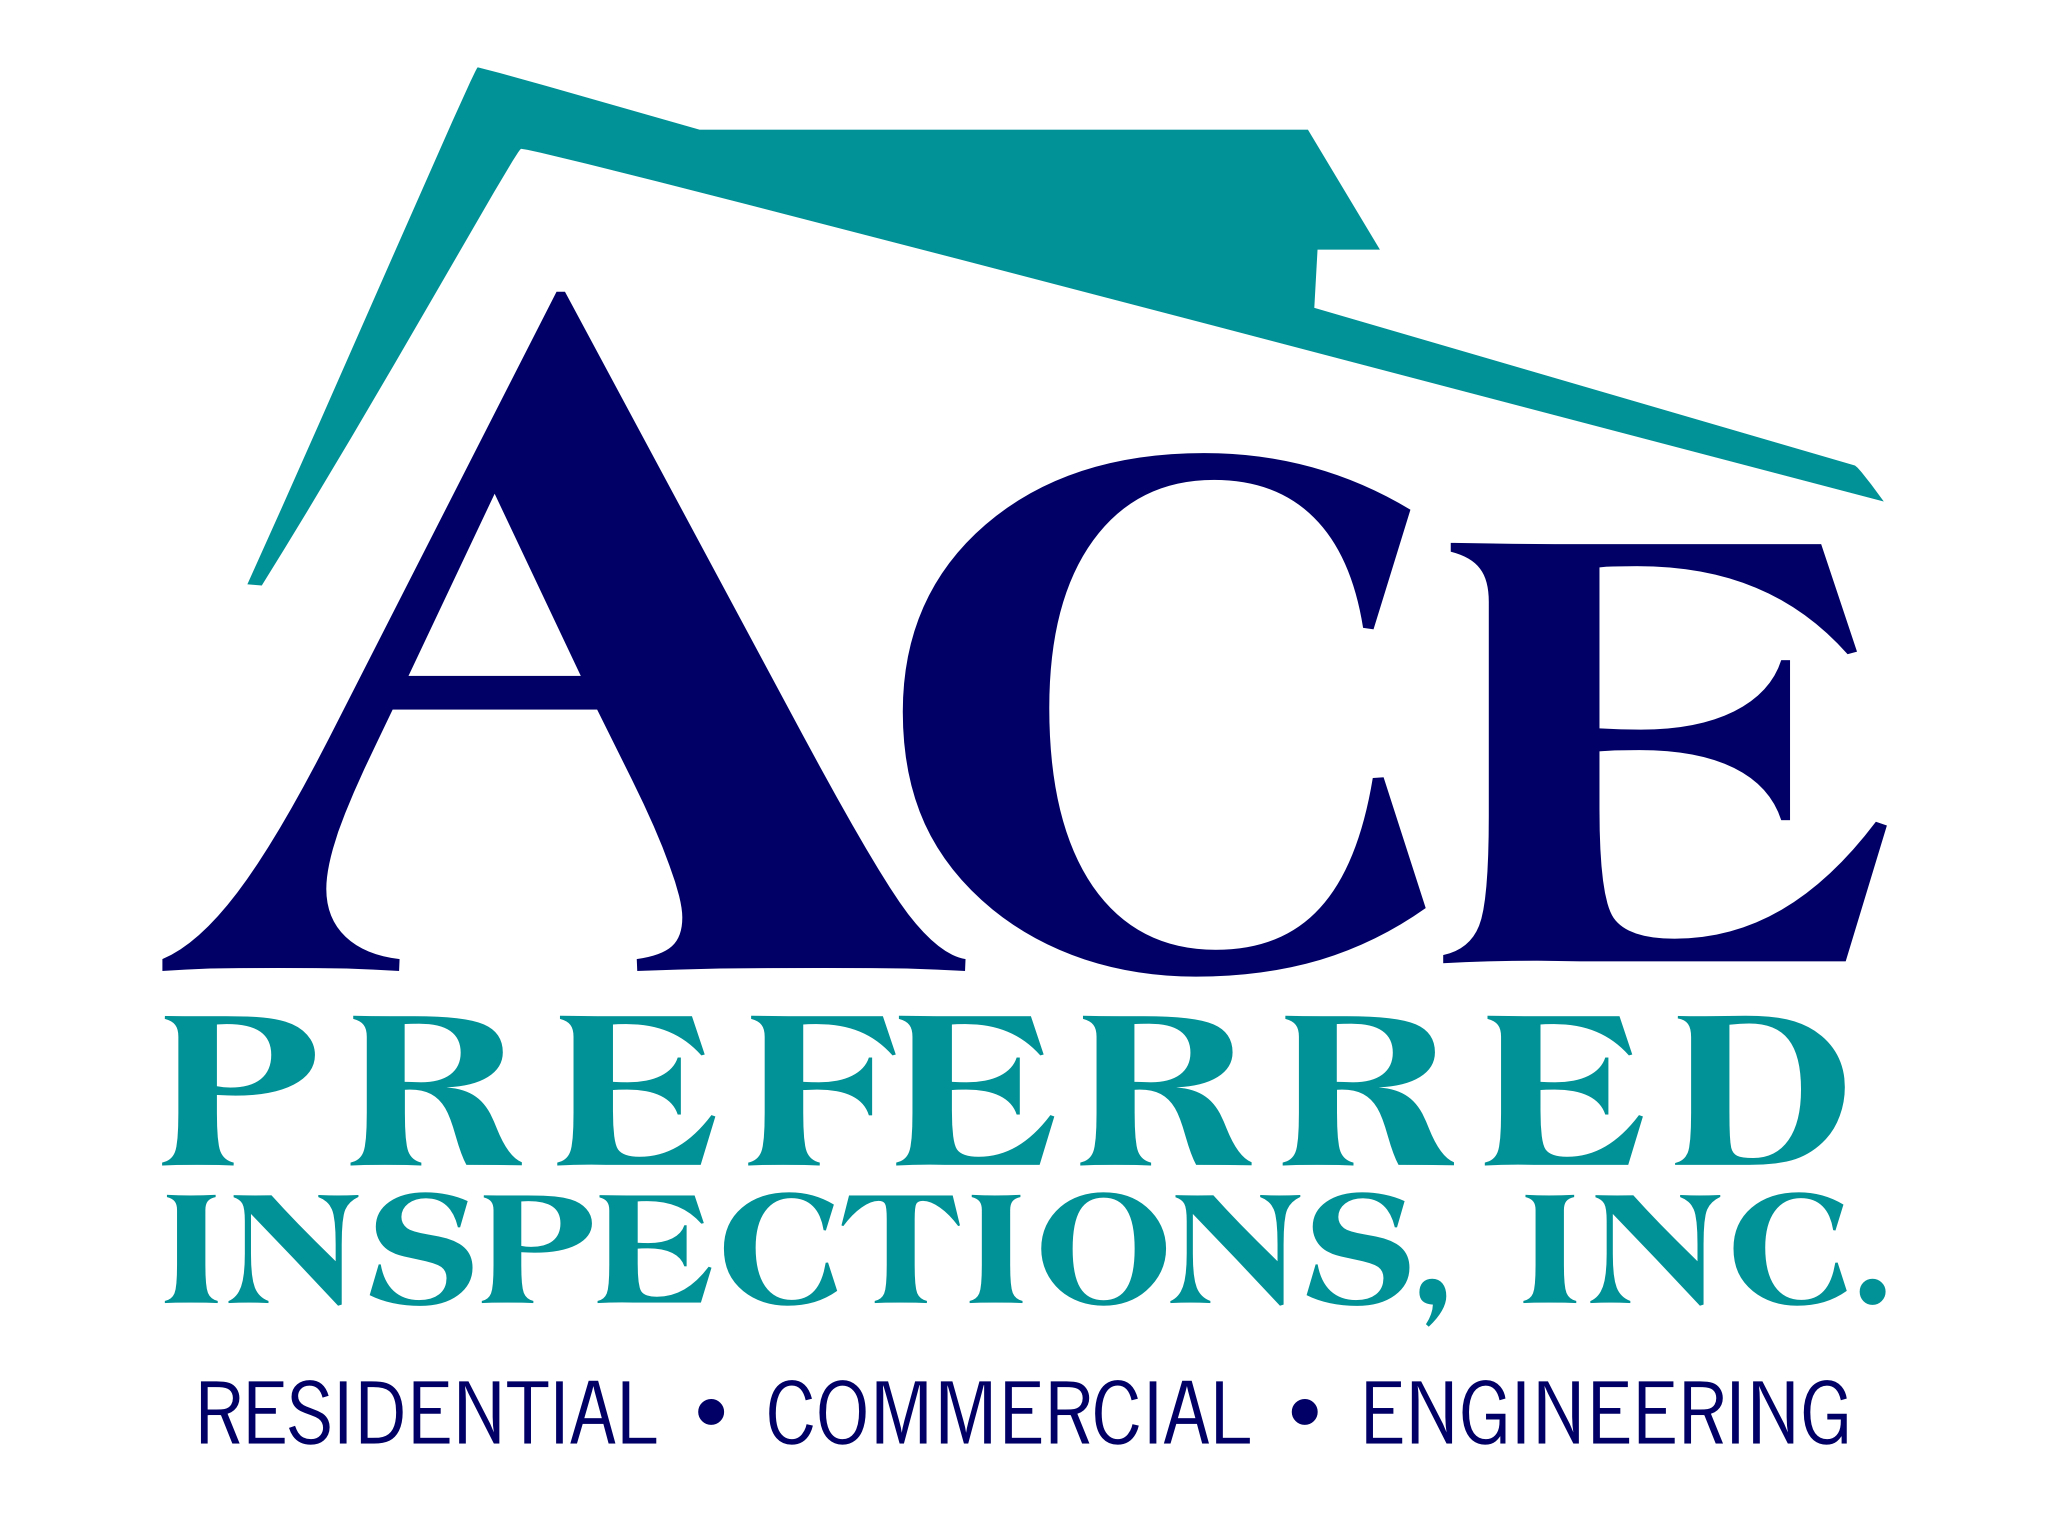 ACE Preferred Inspections, Inc Home Inspections in Beaufort, Bluffton, Hilton Head, and Surrounding Areas